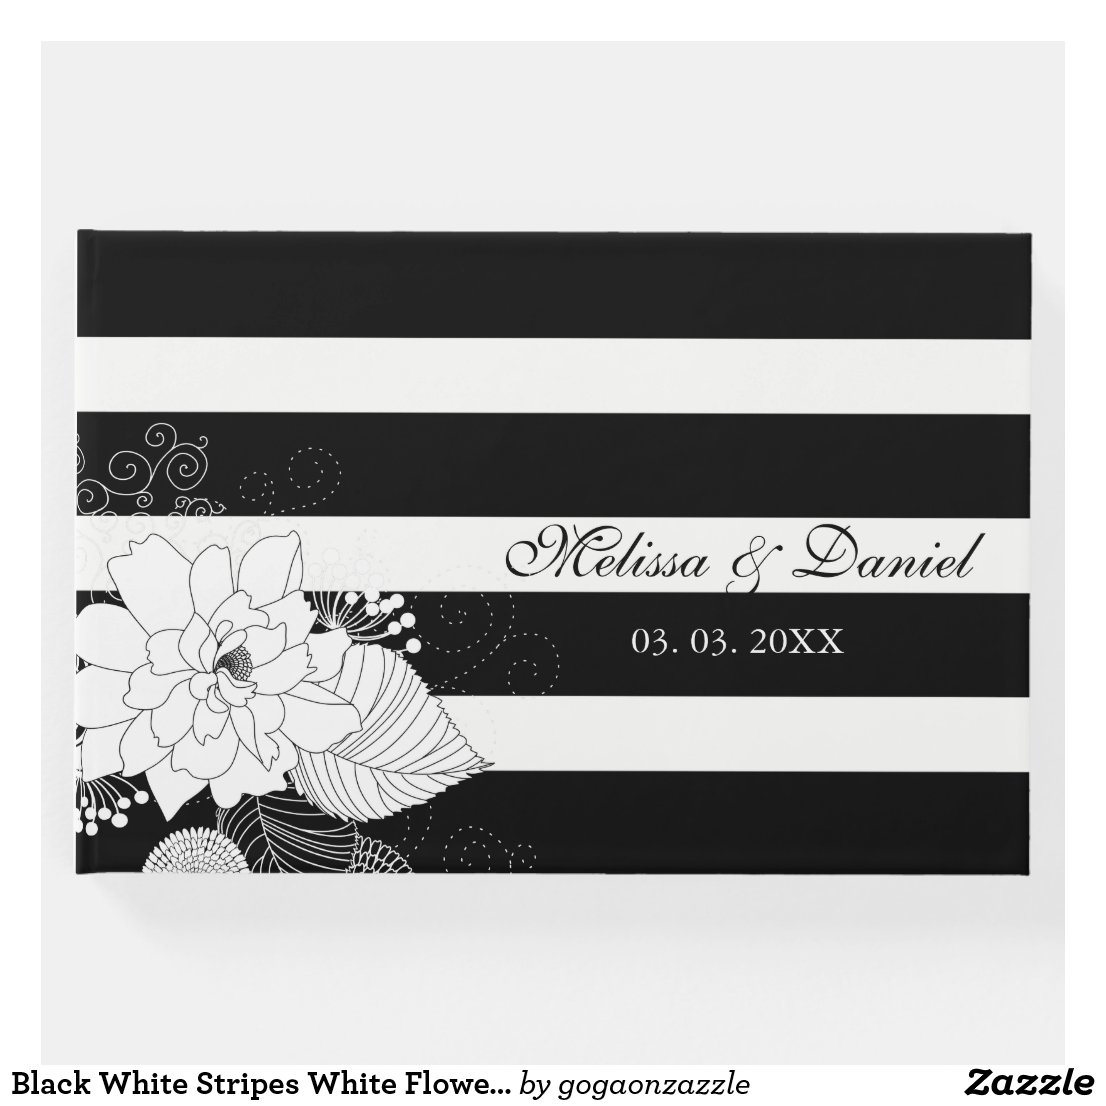 Black White Stripes White Flowers